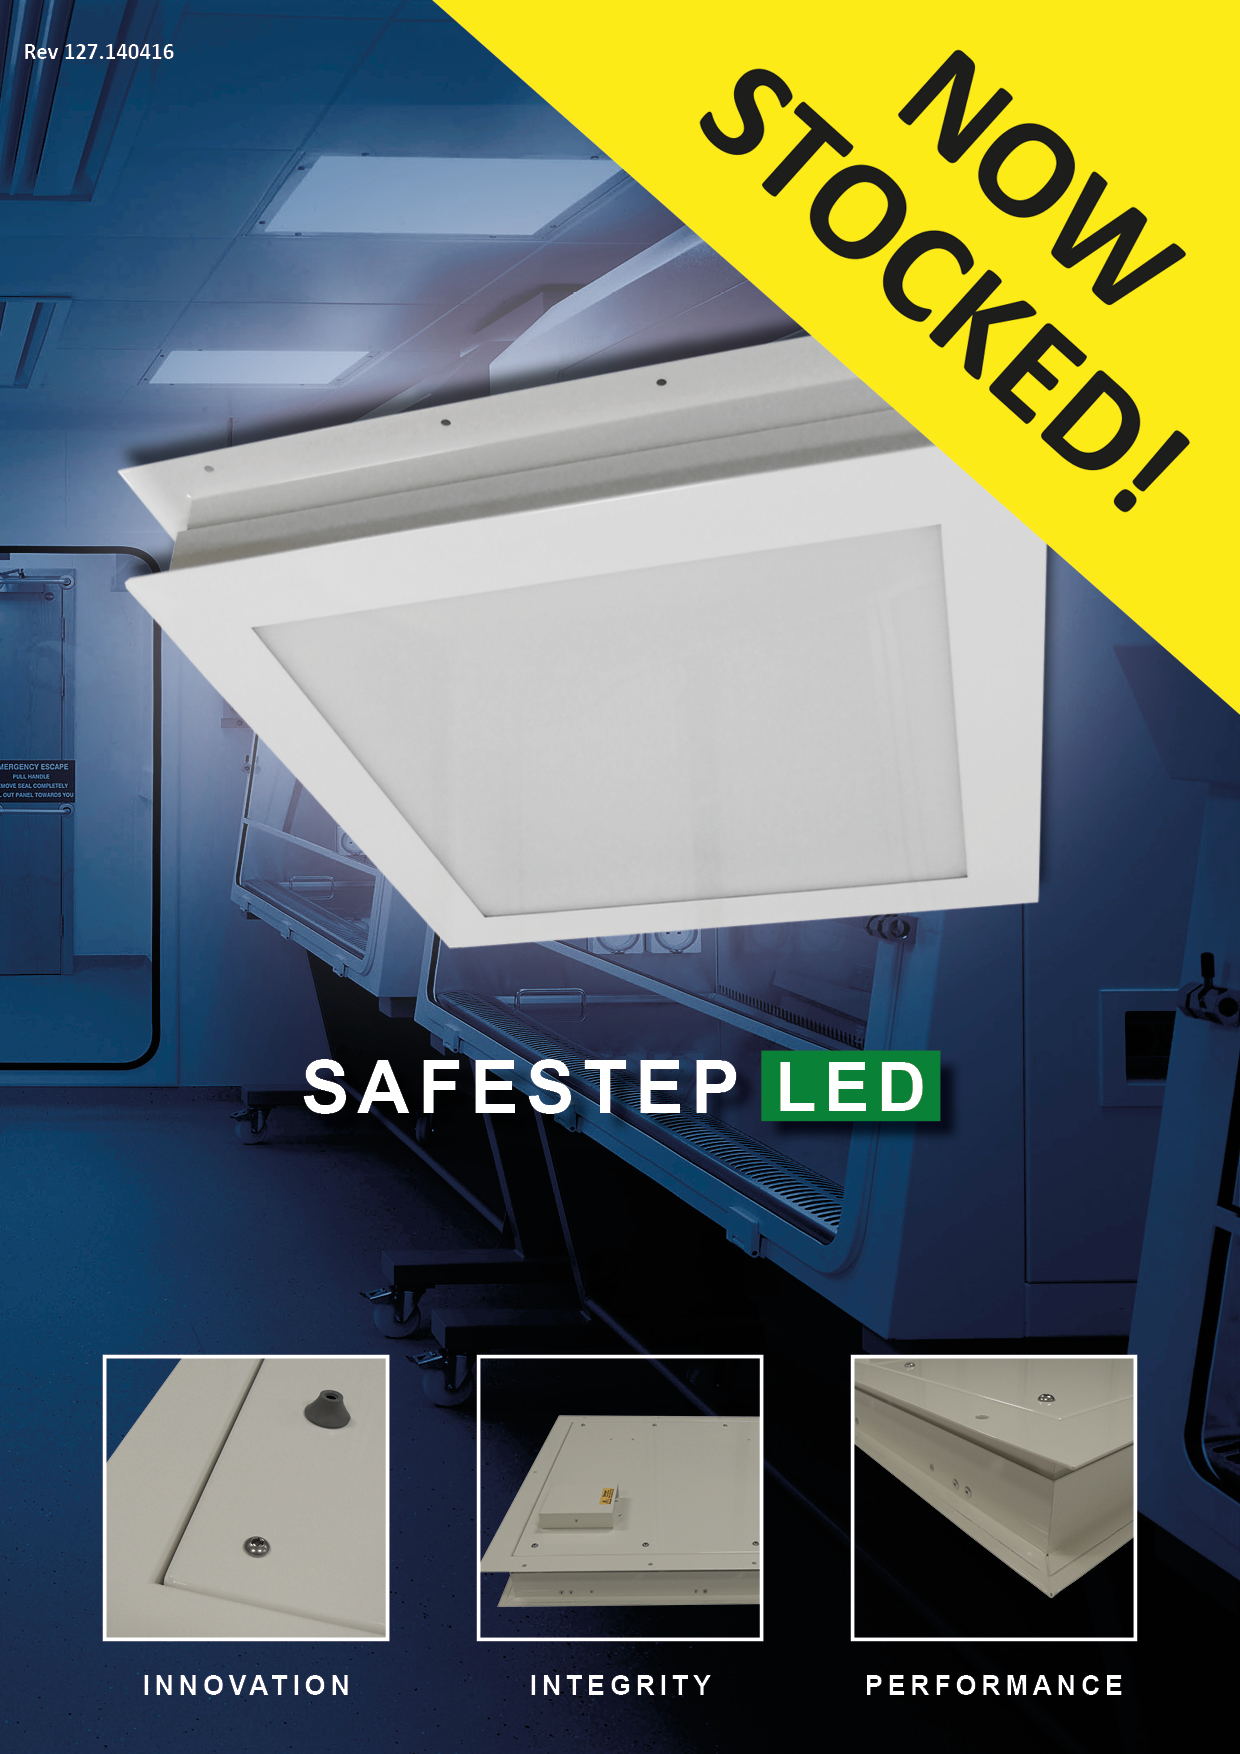 SAFESTEP LED - Now stocked